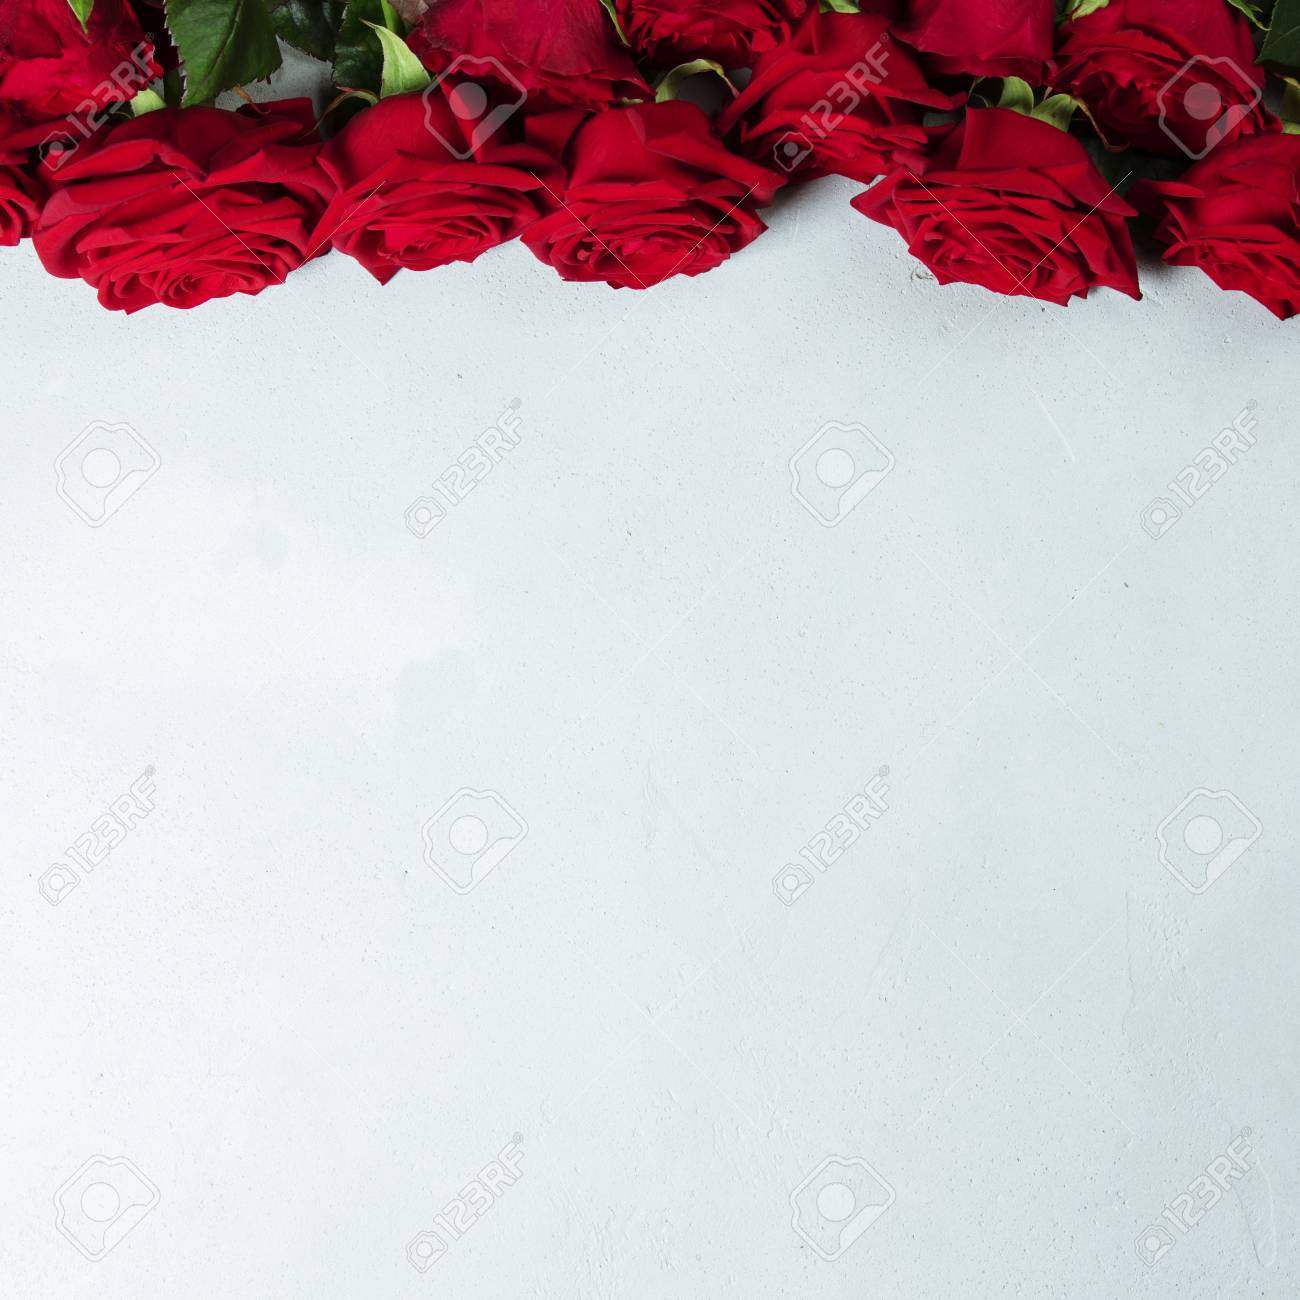 photo roses on a white conctere background big beautiful bouquet of red roses a t for a wedding birthda